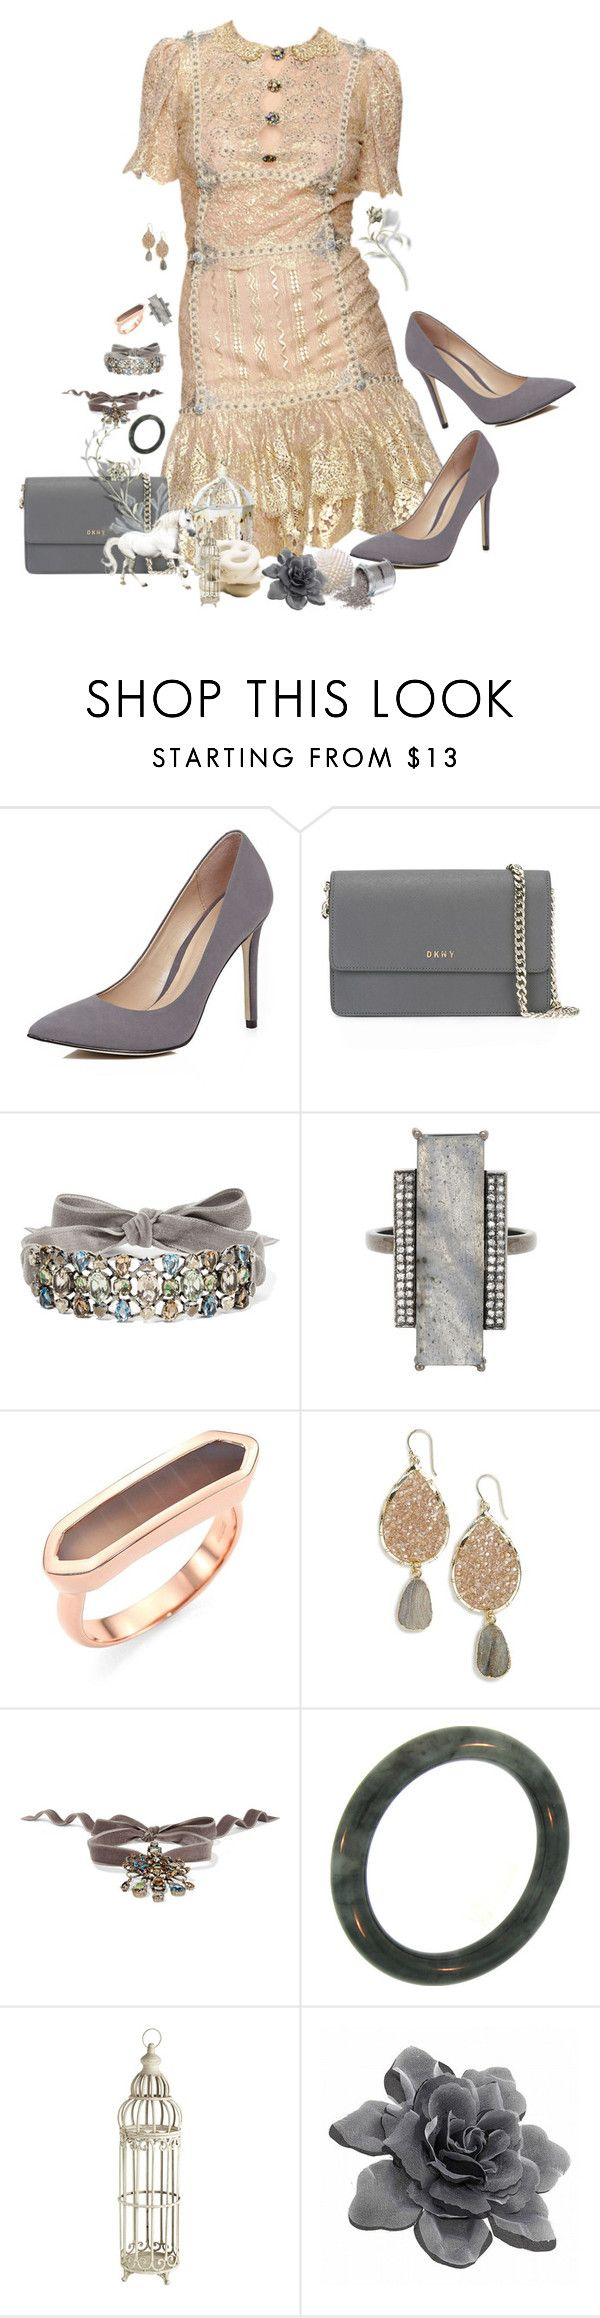 """Untitled #1592"" by patsypatsy ❤ liked on Polyvore featuring Angelo Marani, River Island, DKNY, Lanvin, ADORNIA, Monica Vinader, Panacea, Pier 1 Imports and MAC Cosmetics"